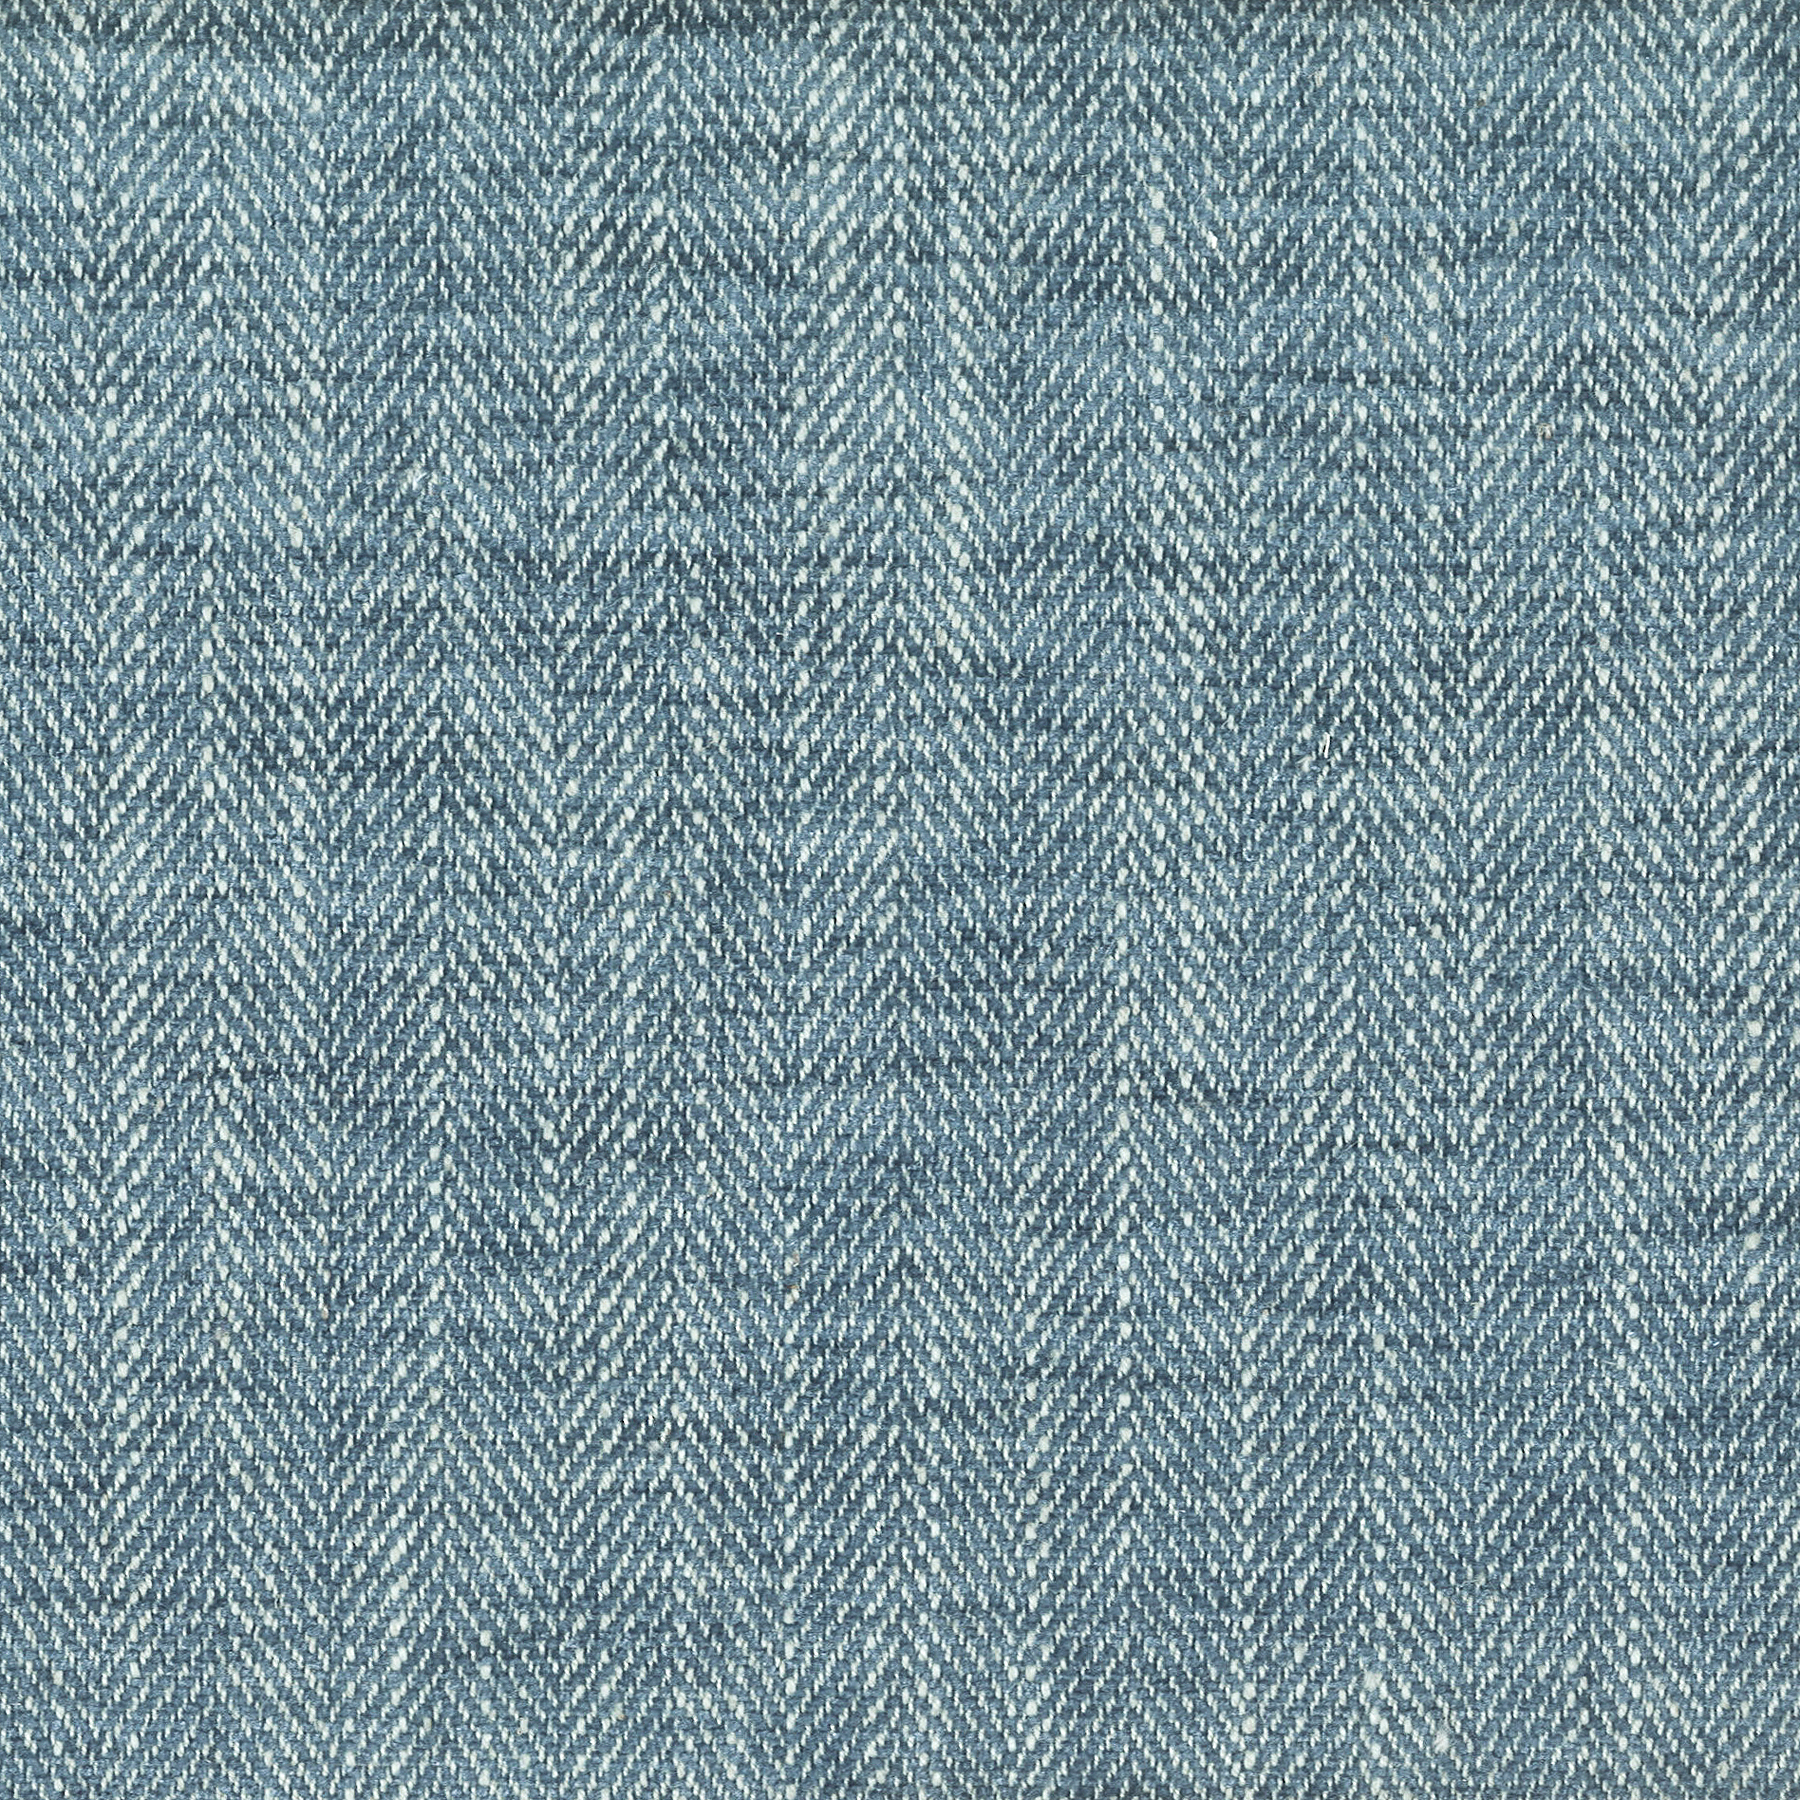 Artic 1 Chambray